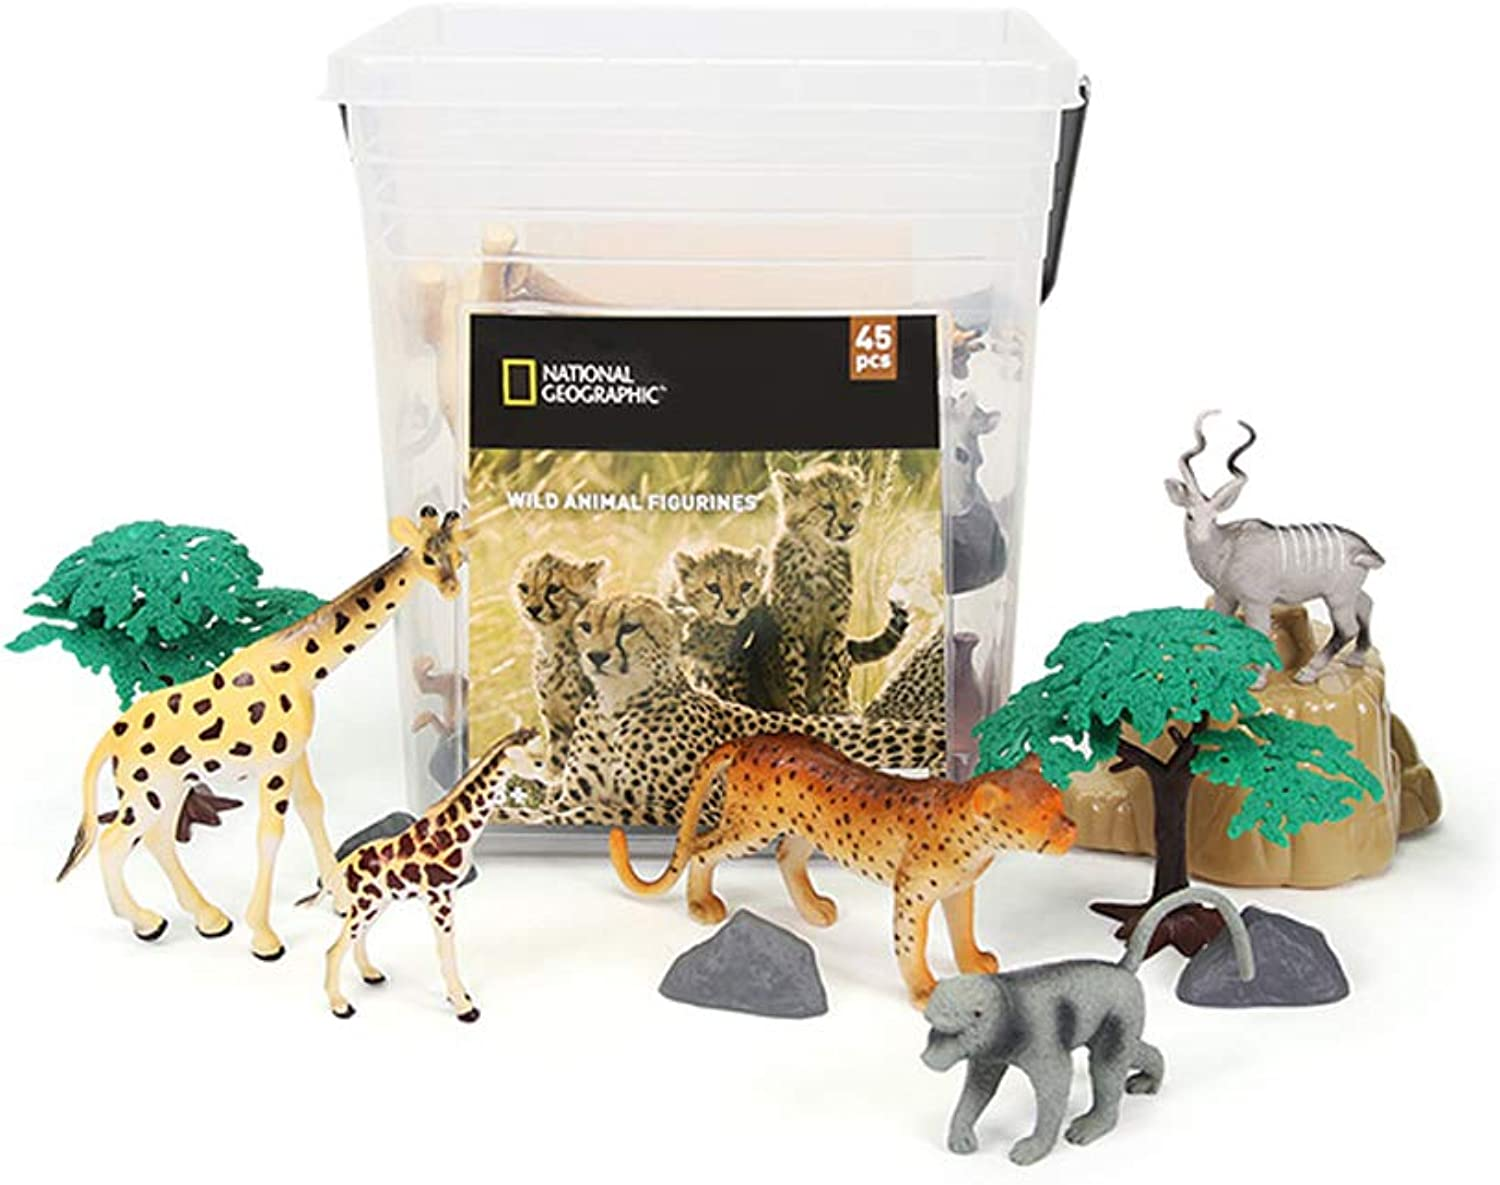 National Geographic Wild Animal Figurines in The Serengeti for Kids 45pcs